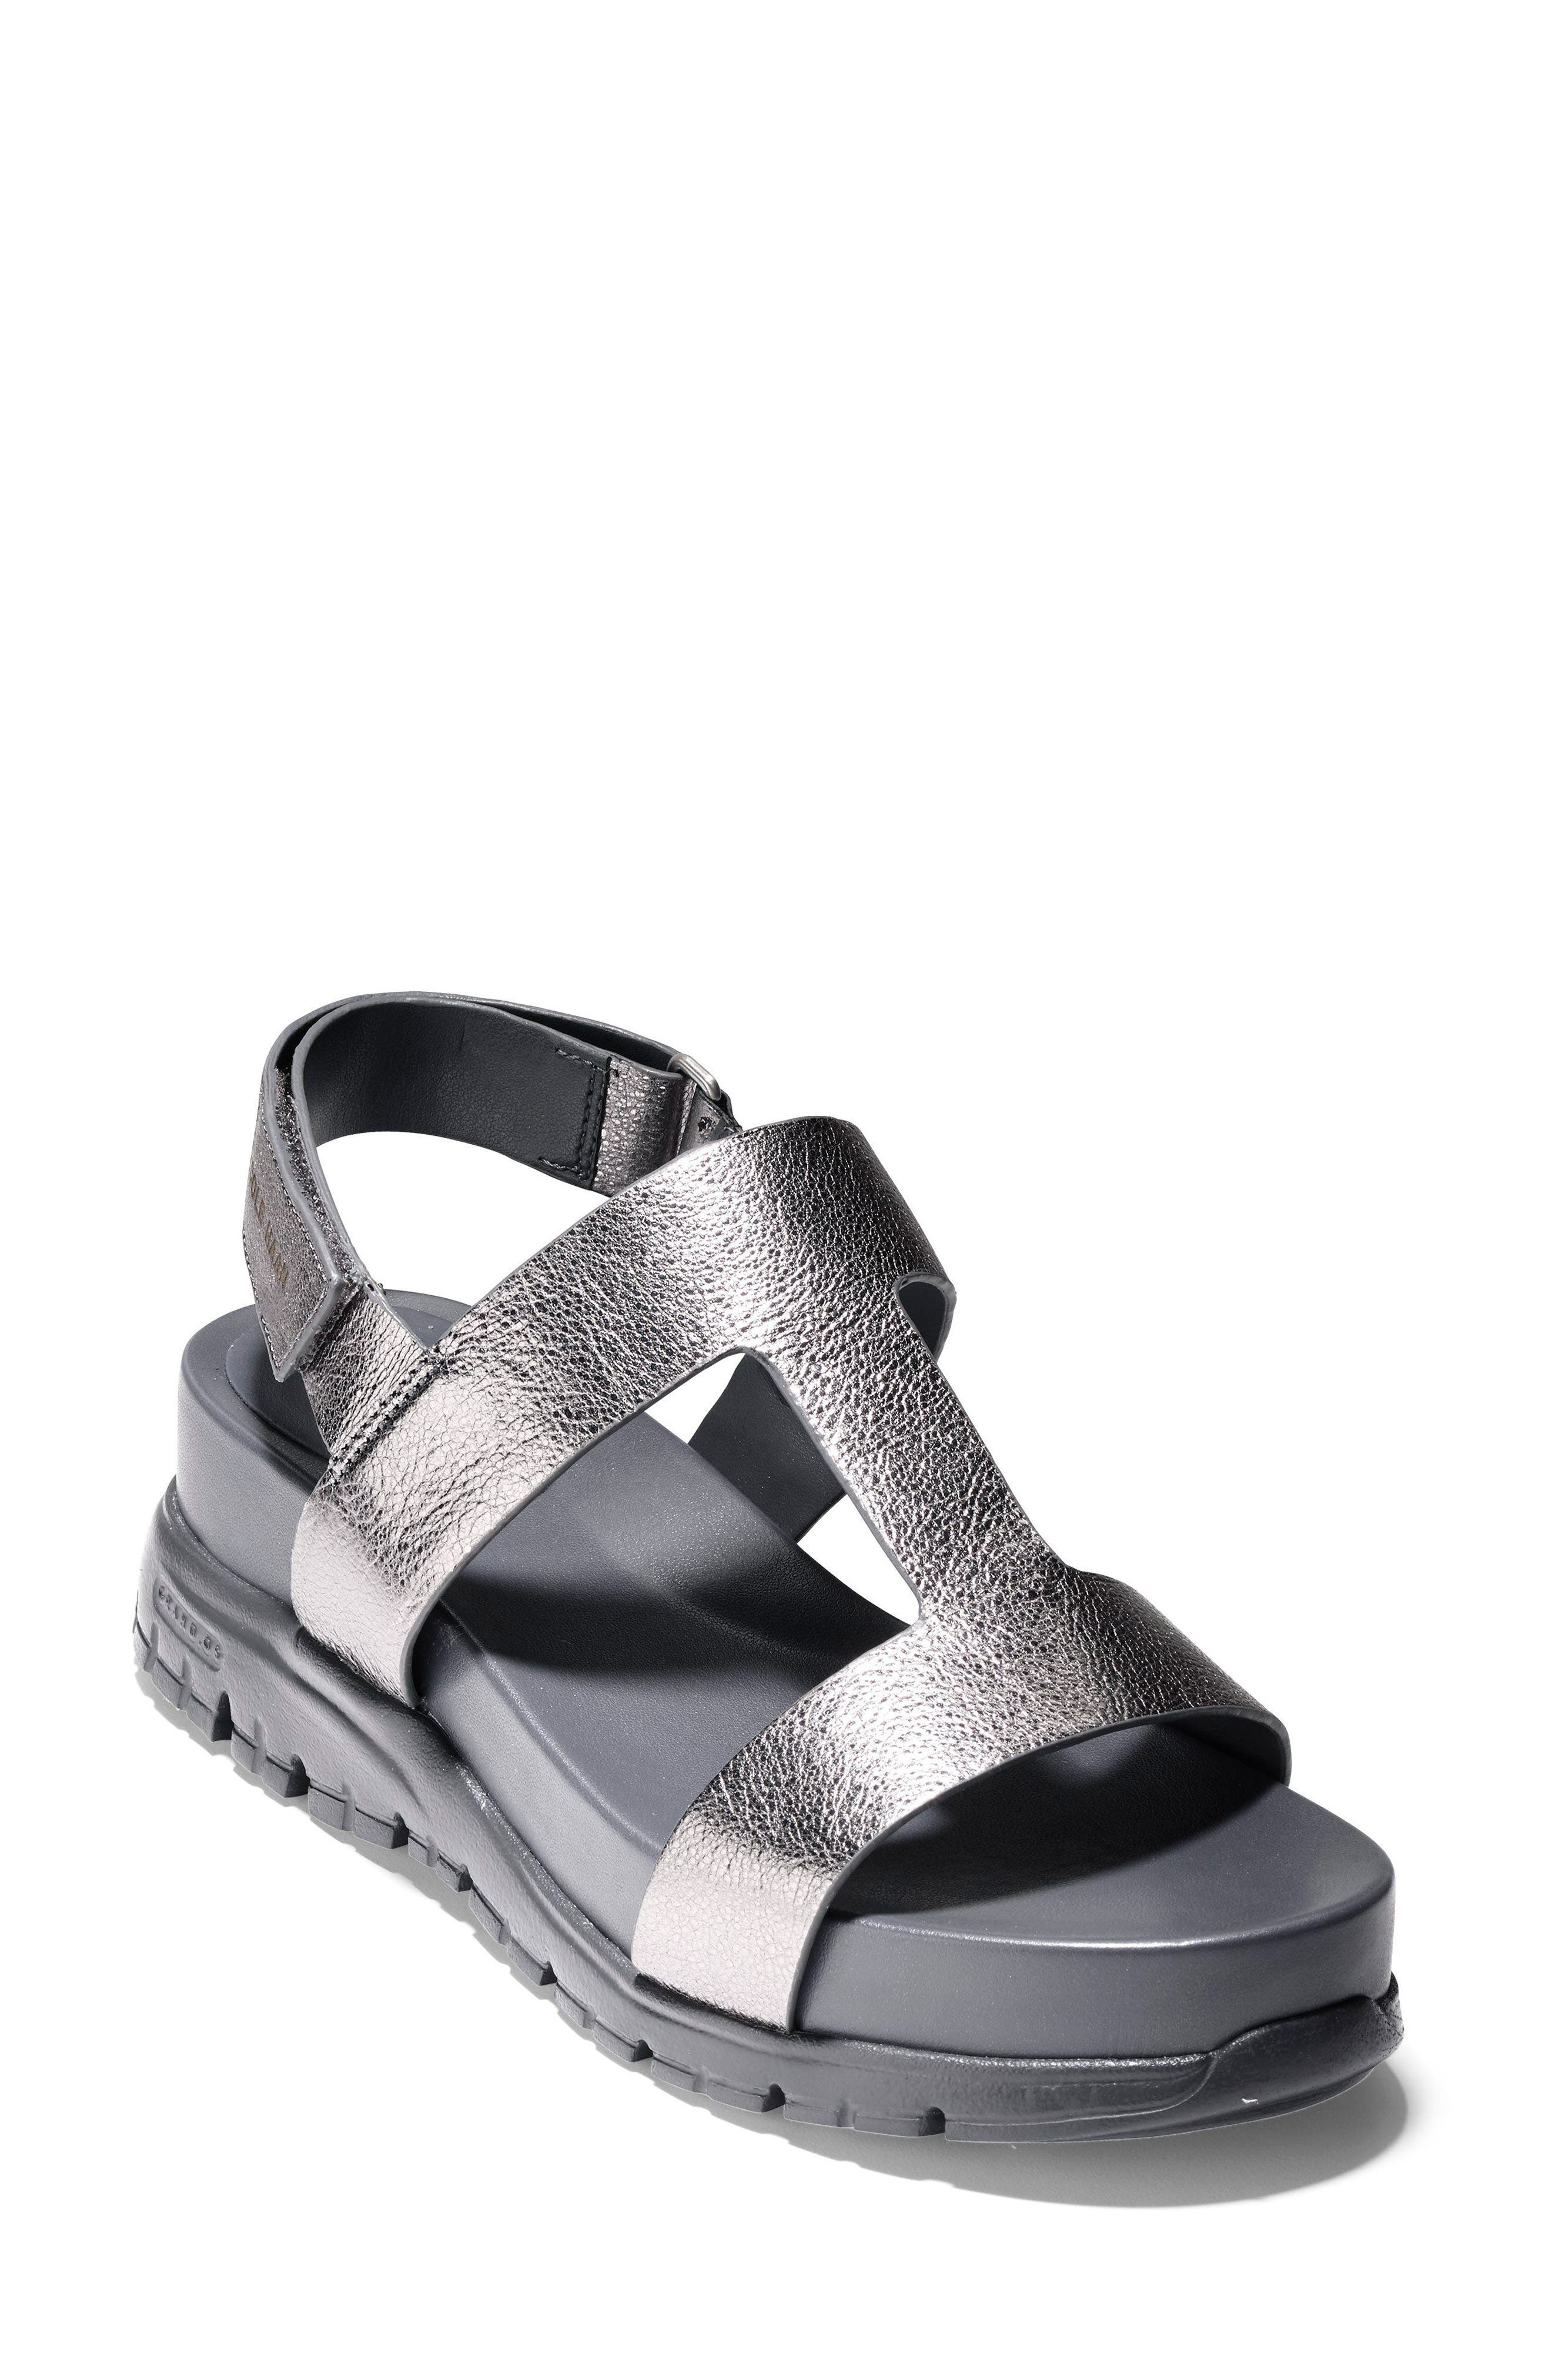 ZeroGrand T-Strap Sandal,                         Main,                         color, Anthracite Metallic Leather